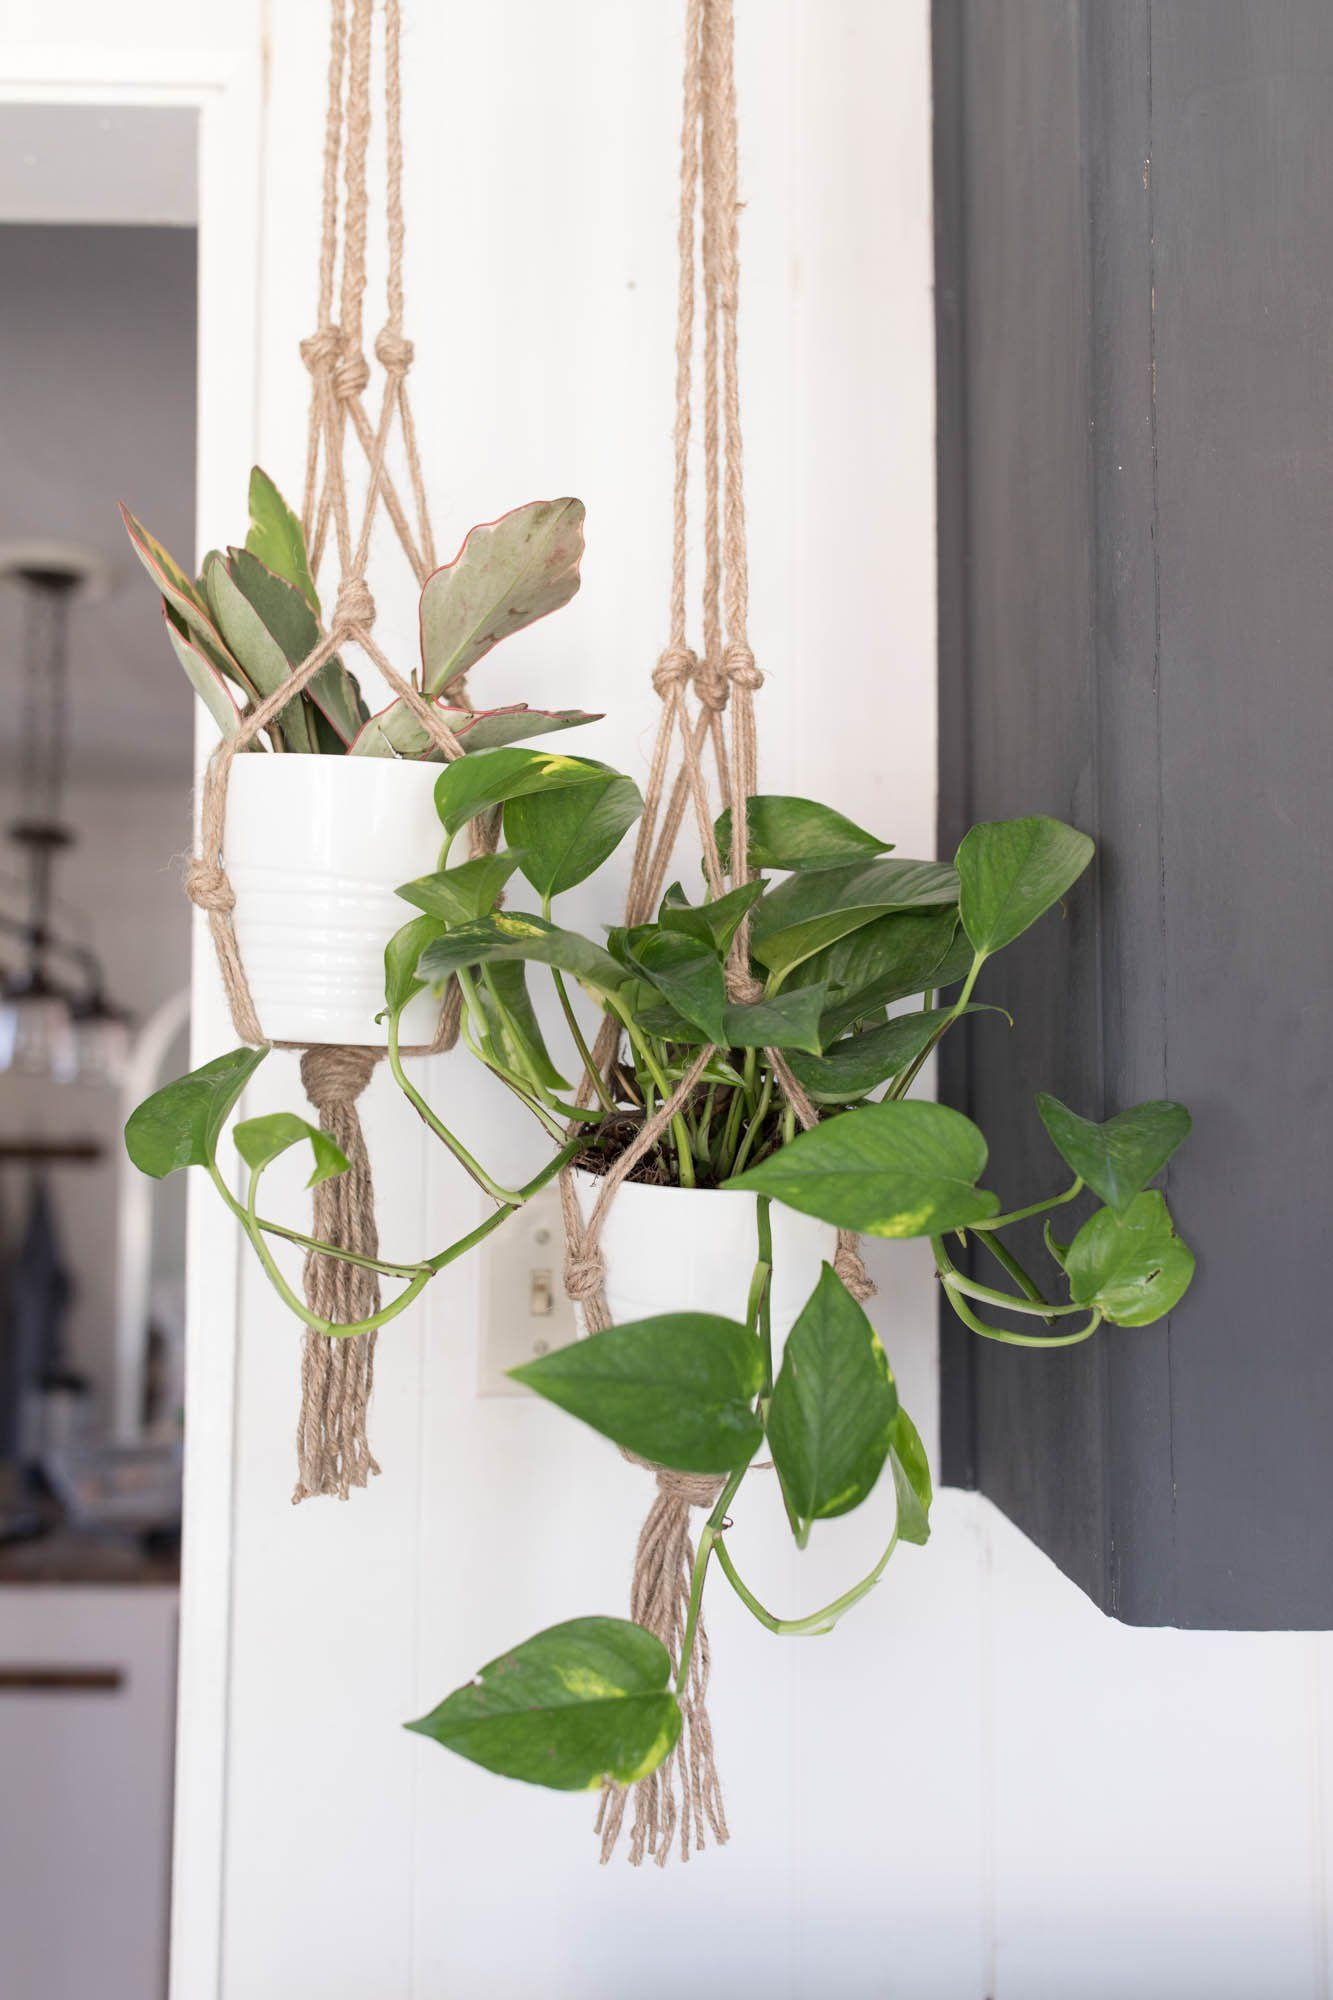 Macrame Plant Hanger DIY is part of Diy macrame plant hanger, Diy plant hanger, Plant hanger, Macrame plant hanger tutorial, Macrame plant hanger, Hanger diy - This simple DIY macrame plant hanger is perfect for spring  This simple macrame plant hanger tutorial costs less than $2 and takes 15 minutes to make